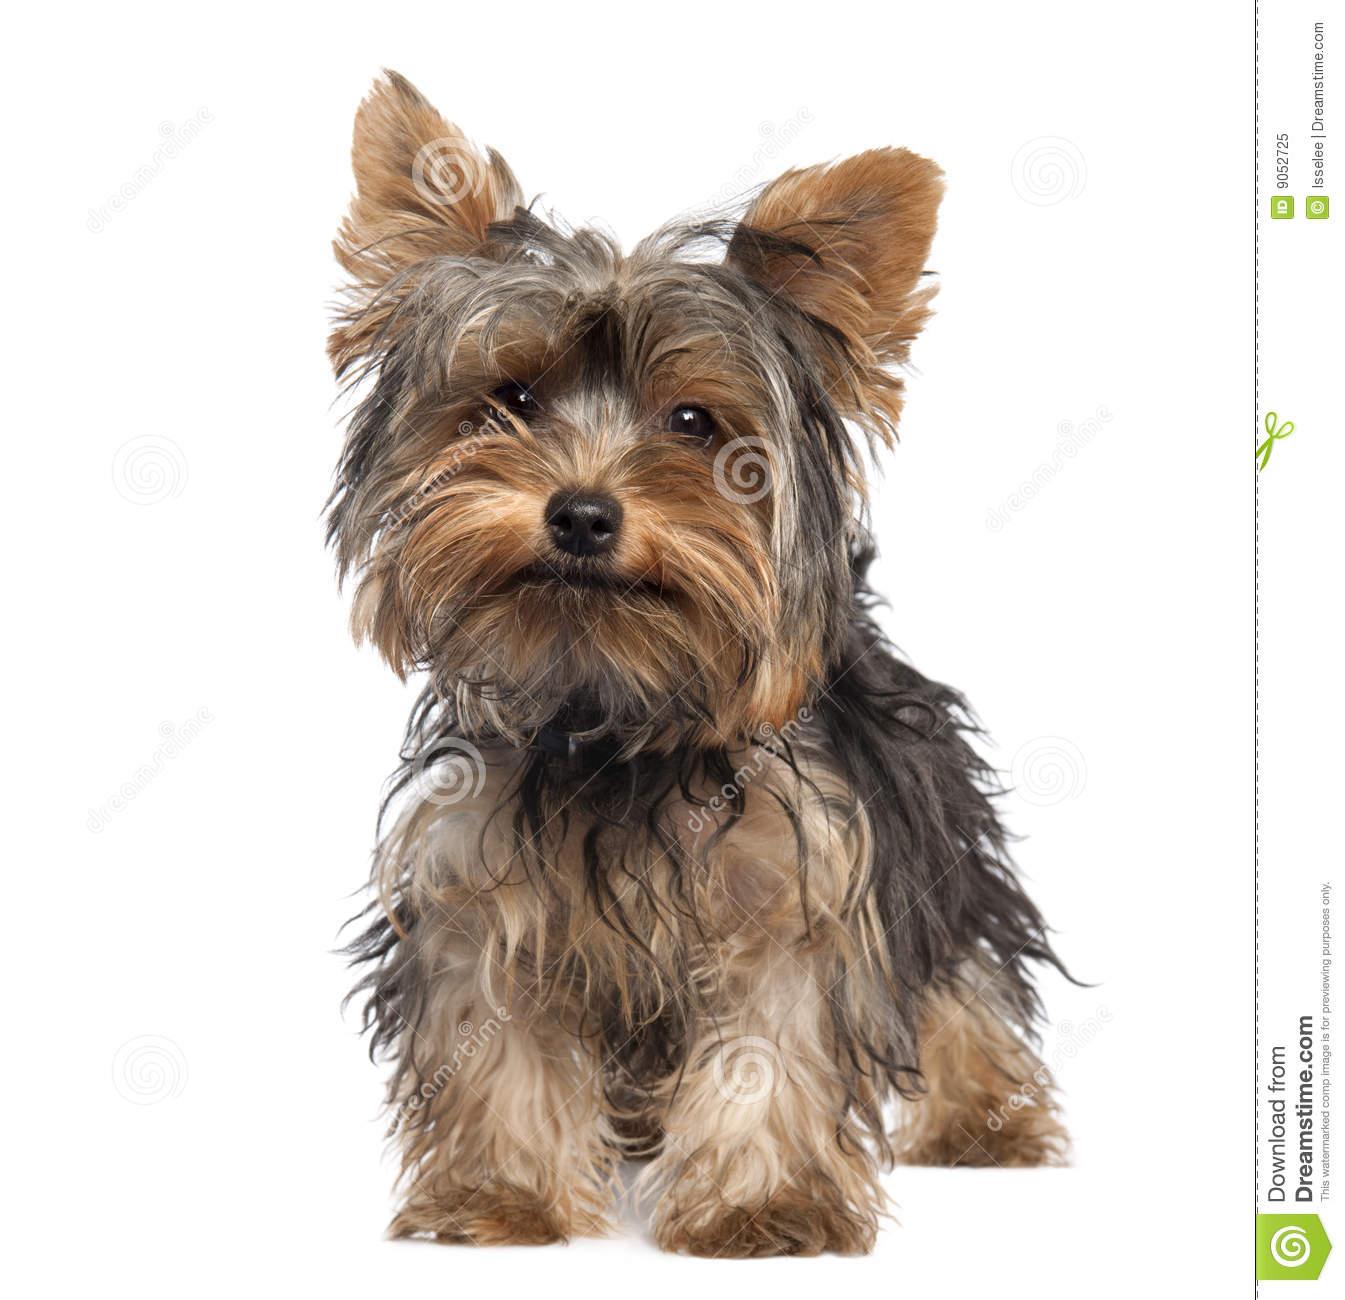 Yorkshire 4 Meses Yorkshire Terrier Puppy 5 Months Old Royalty Free Stock